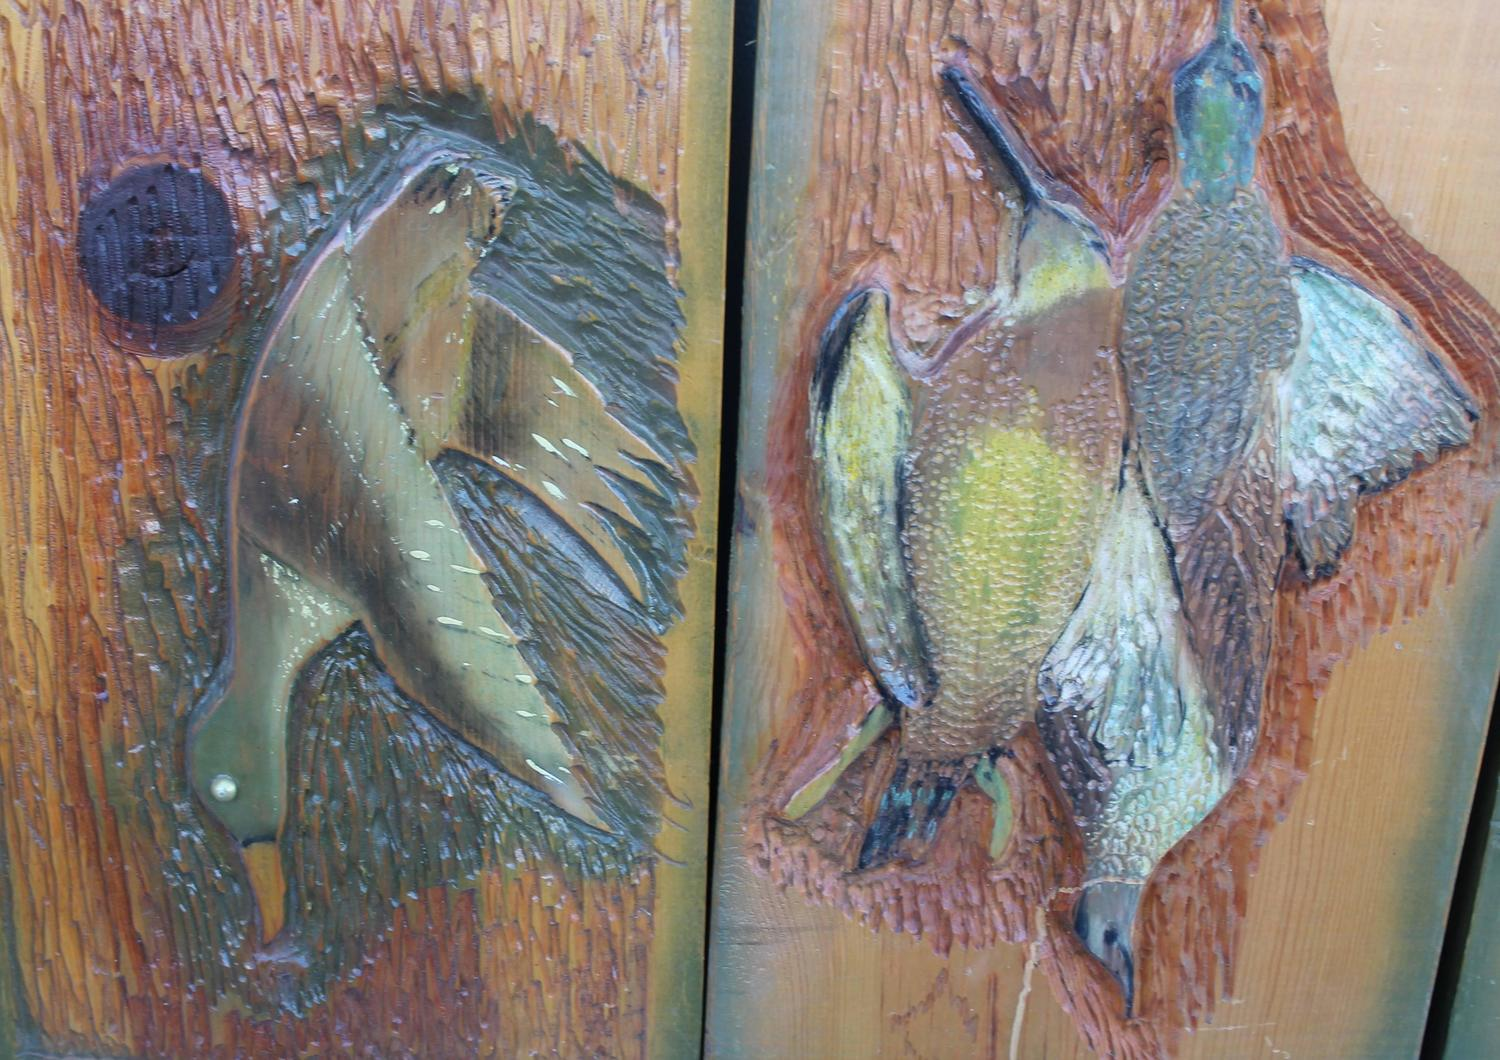 Collection of four game and fish carvings for sale at stdibs